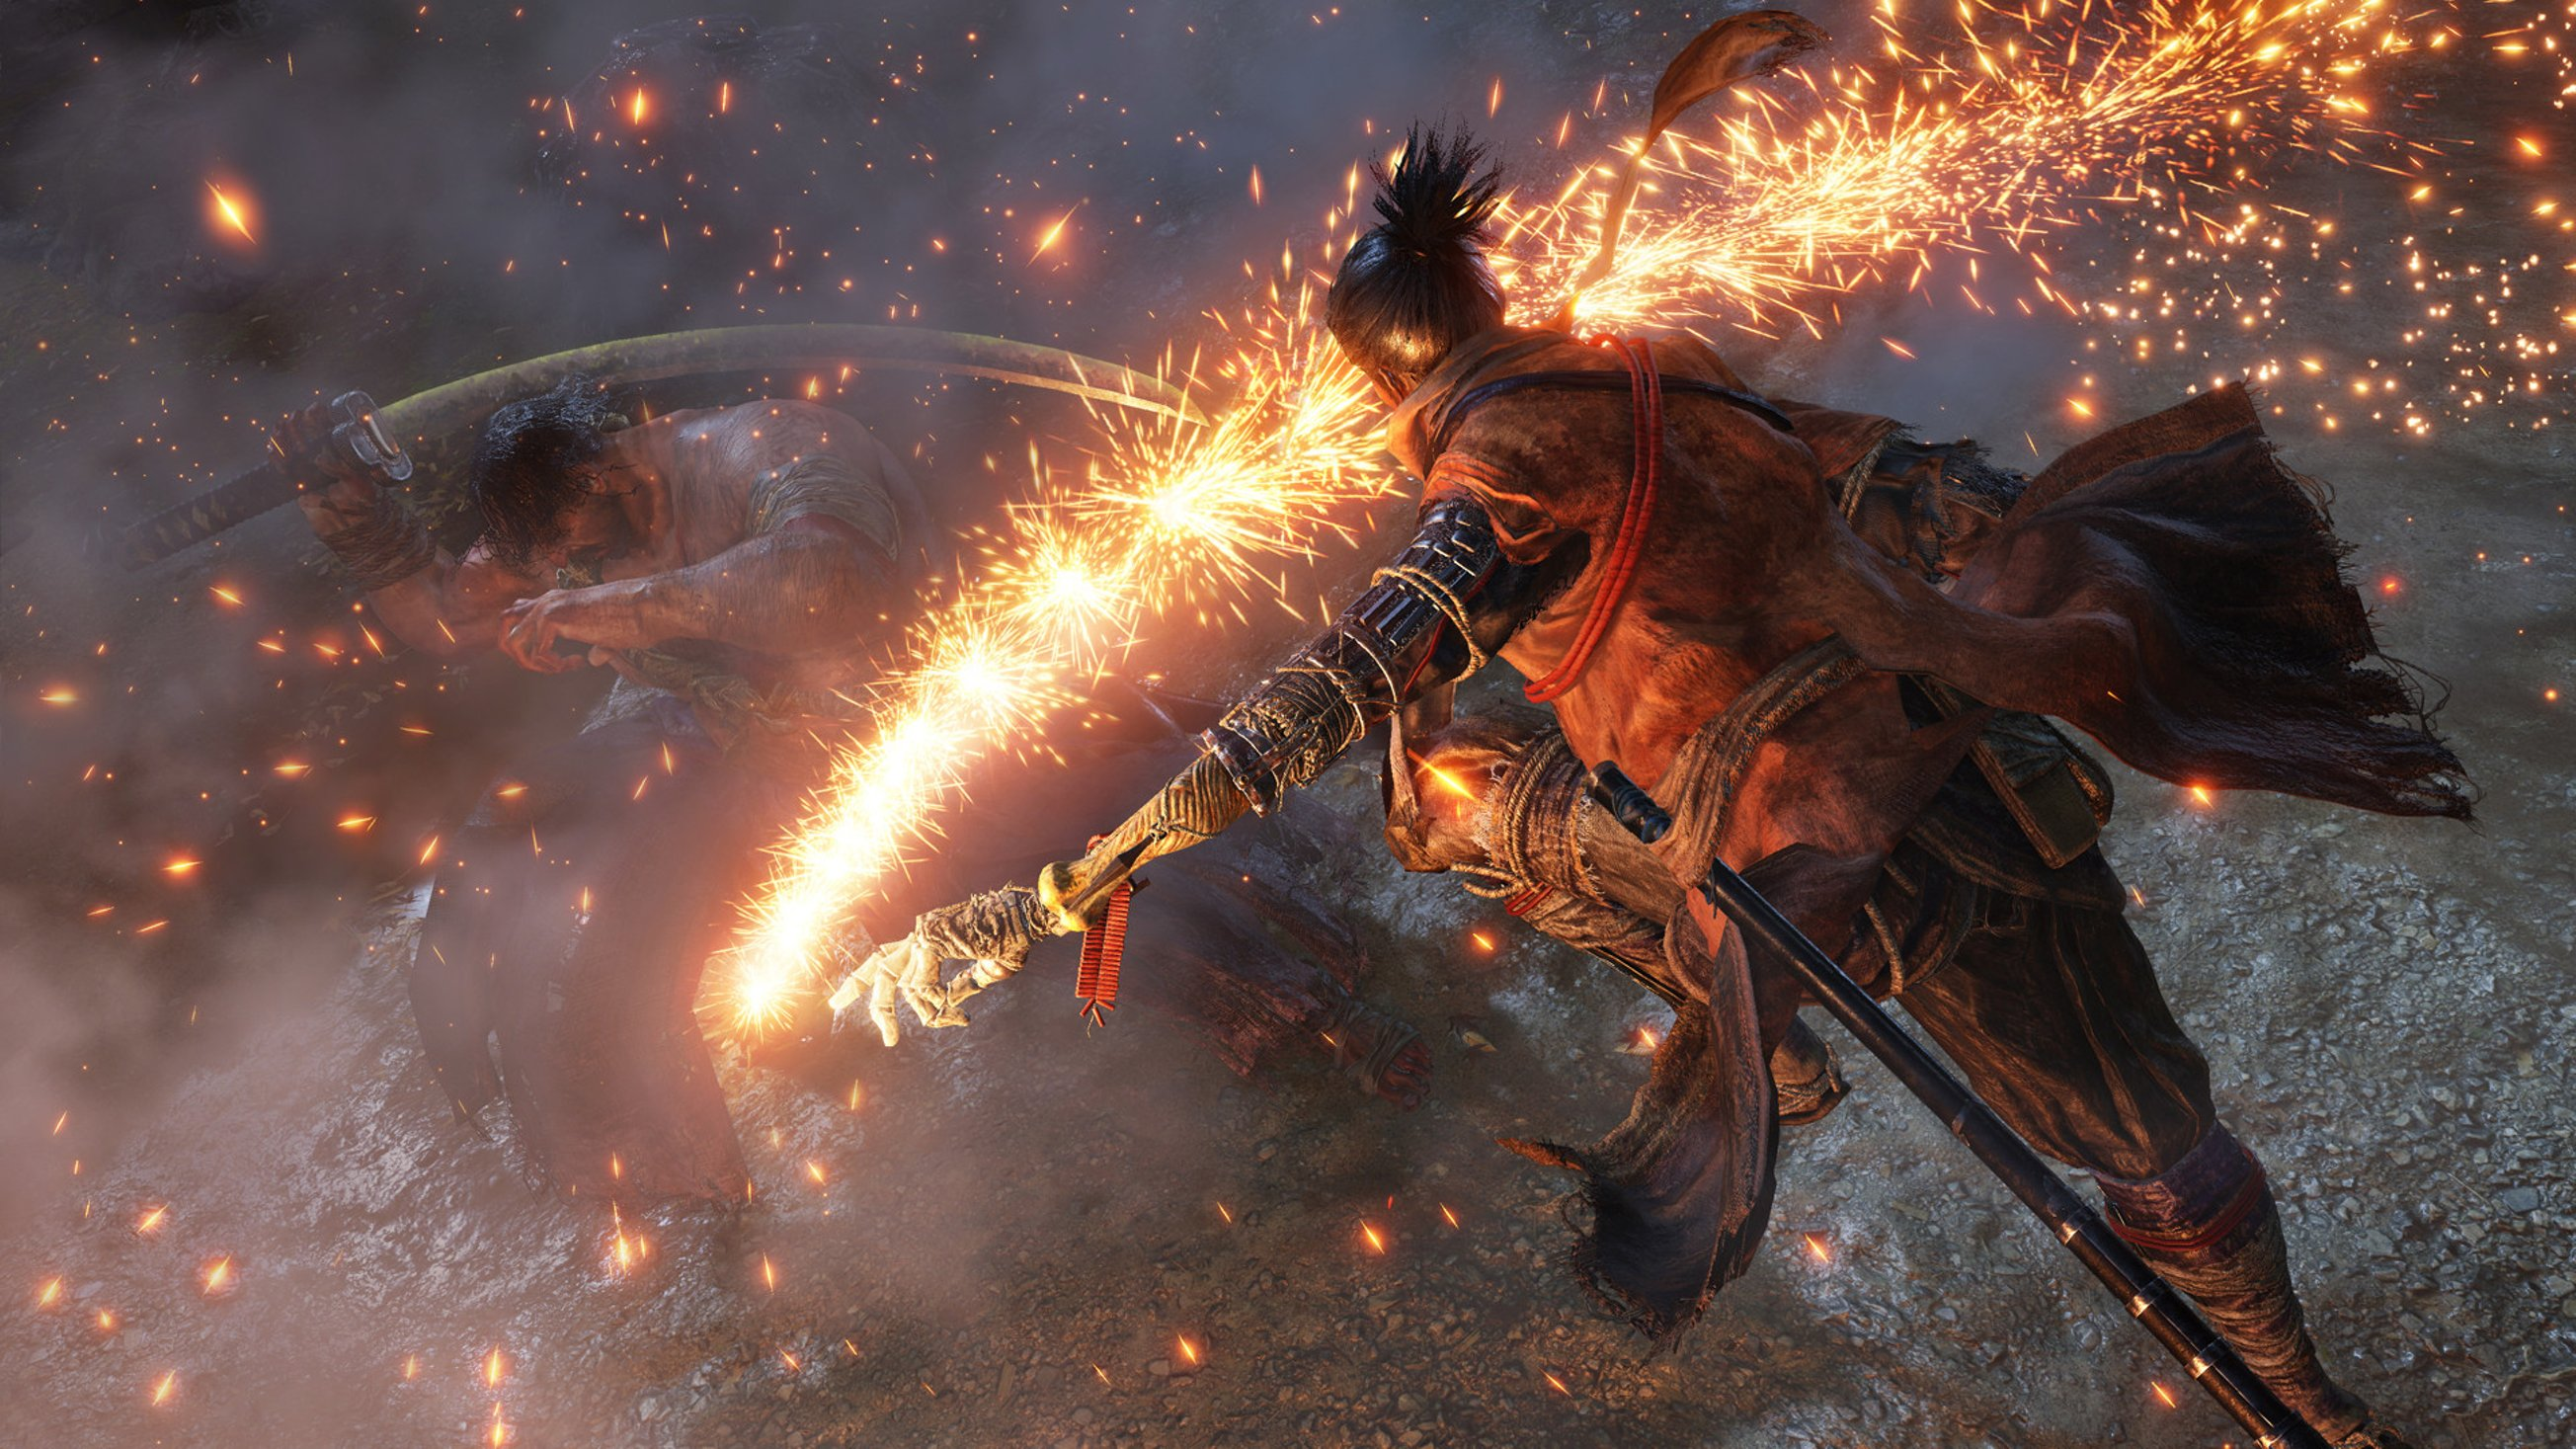 Моддер добавил в Sekiro: Shadows Die Twice полноценный лёгкий режим сложности